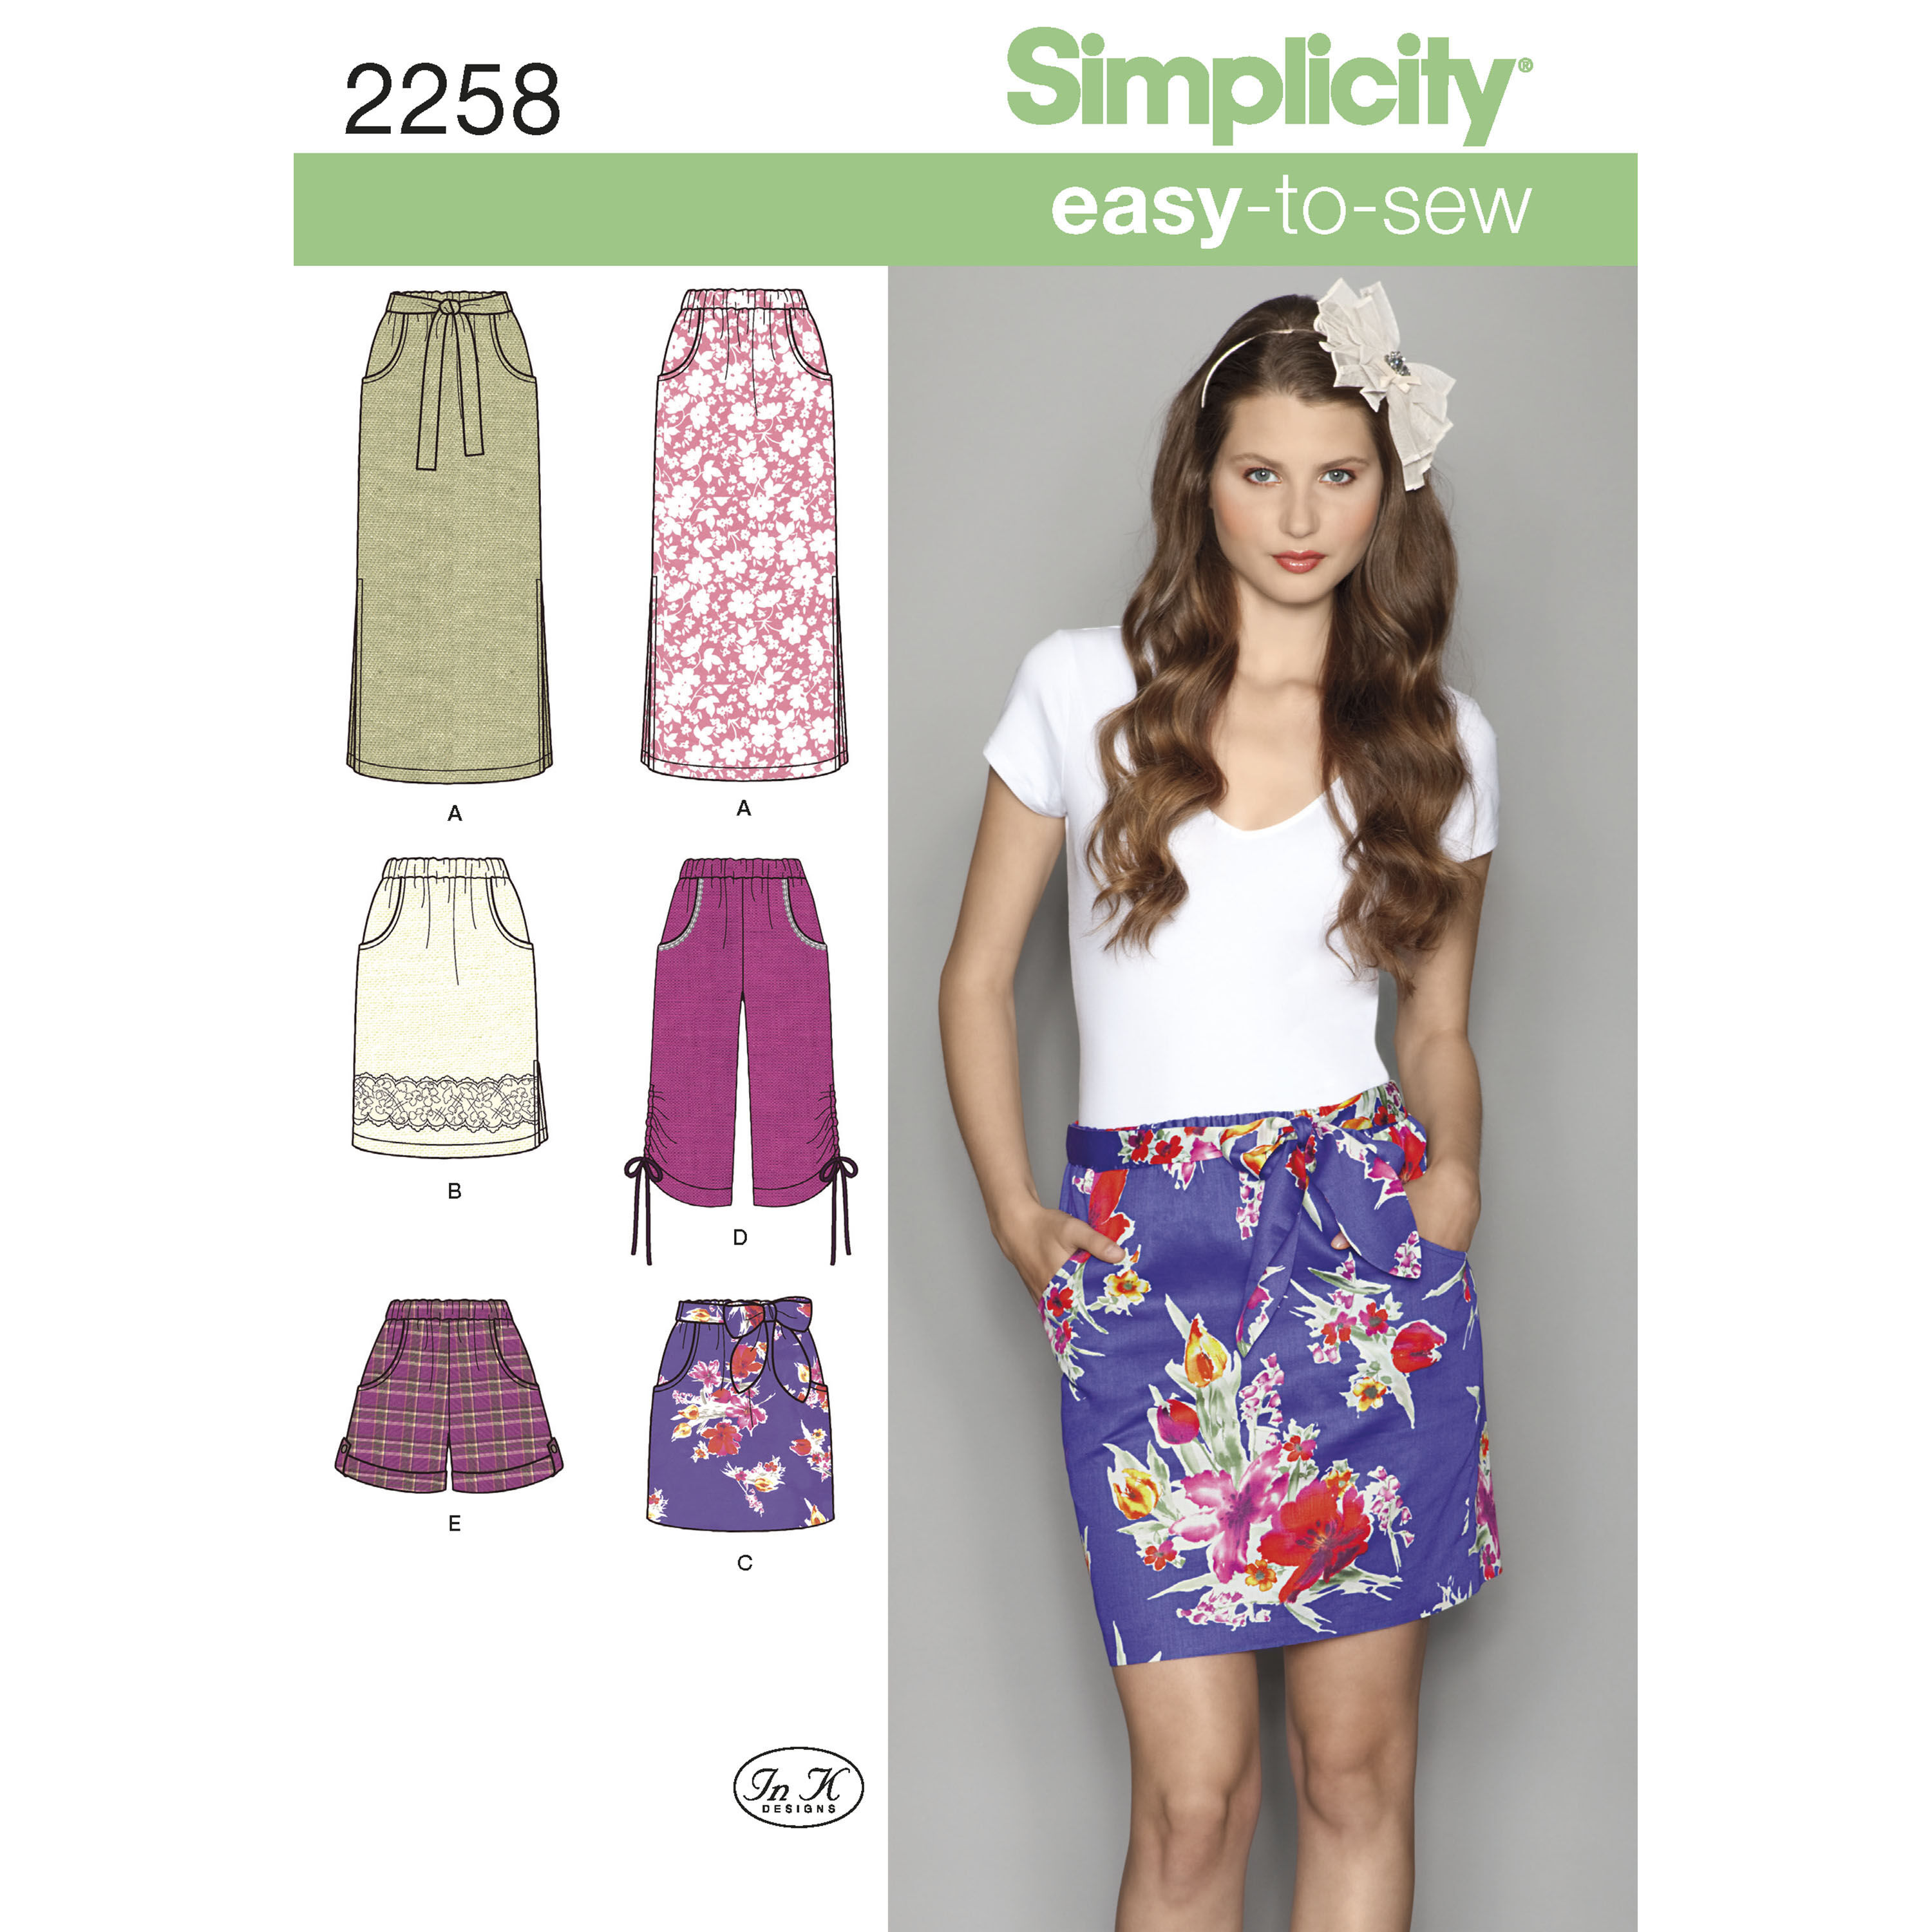 Simplicity Pattern 2258 Misses' Easy-to-Sew Skirts & Shorts